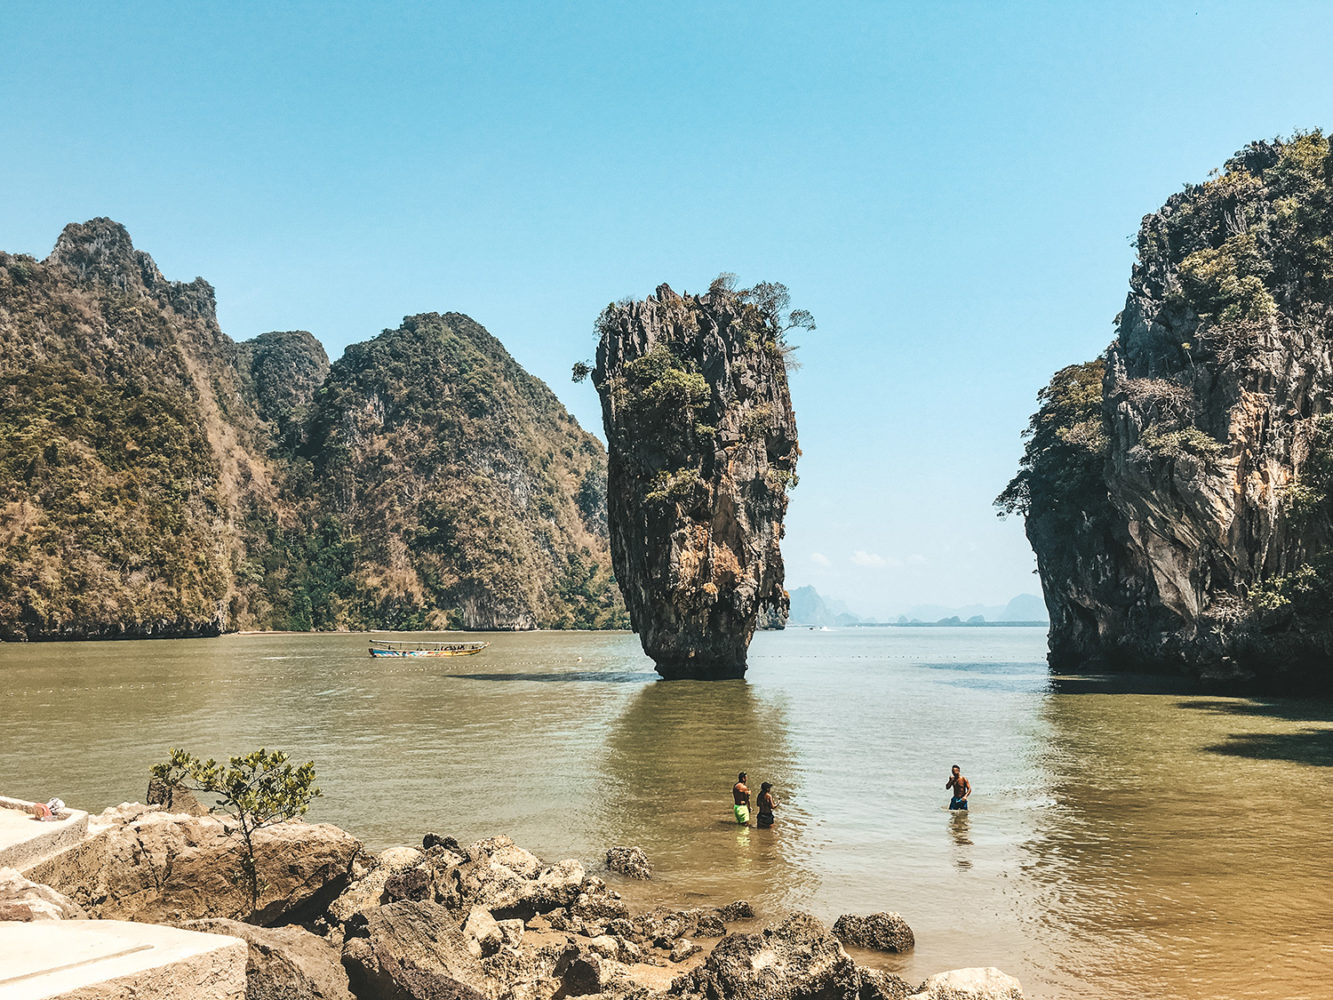 L'île de James Bond Island